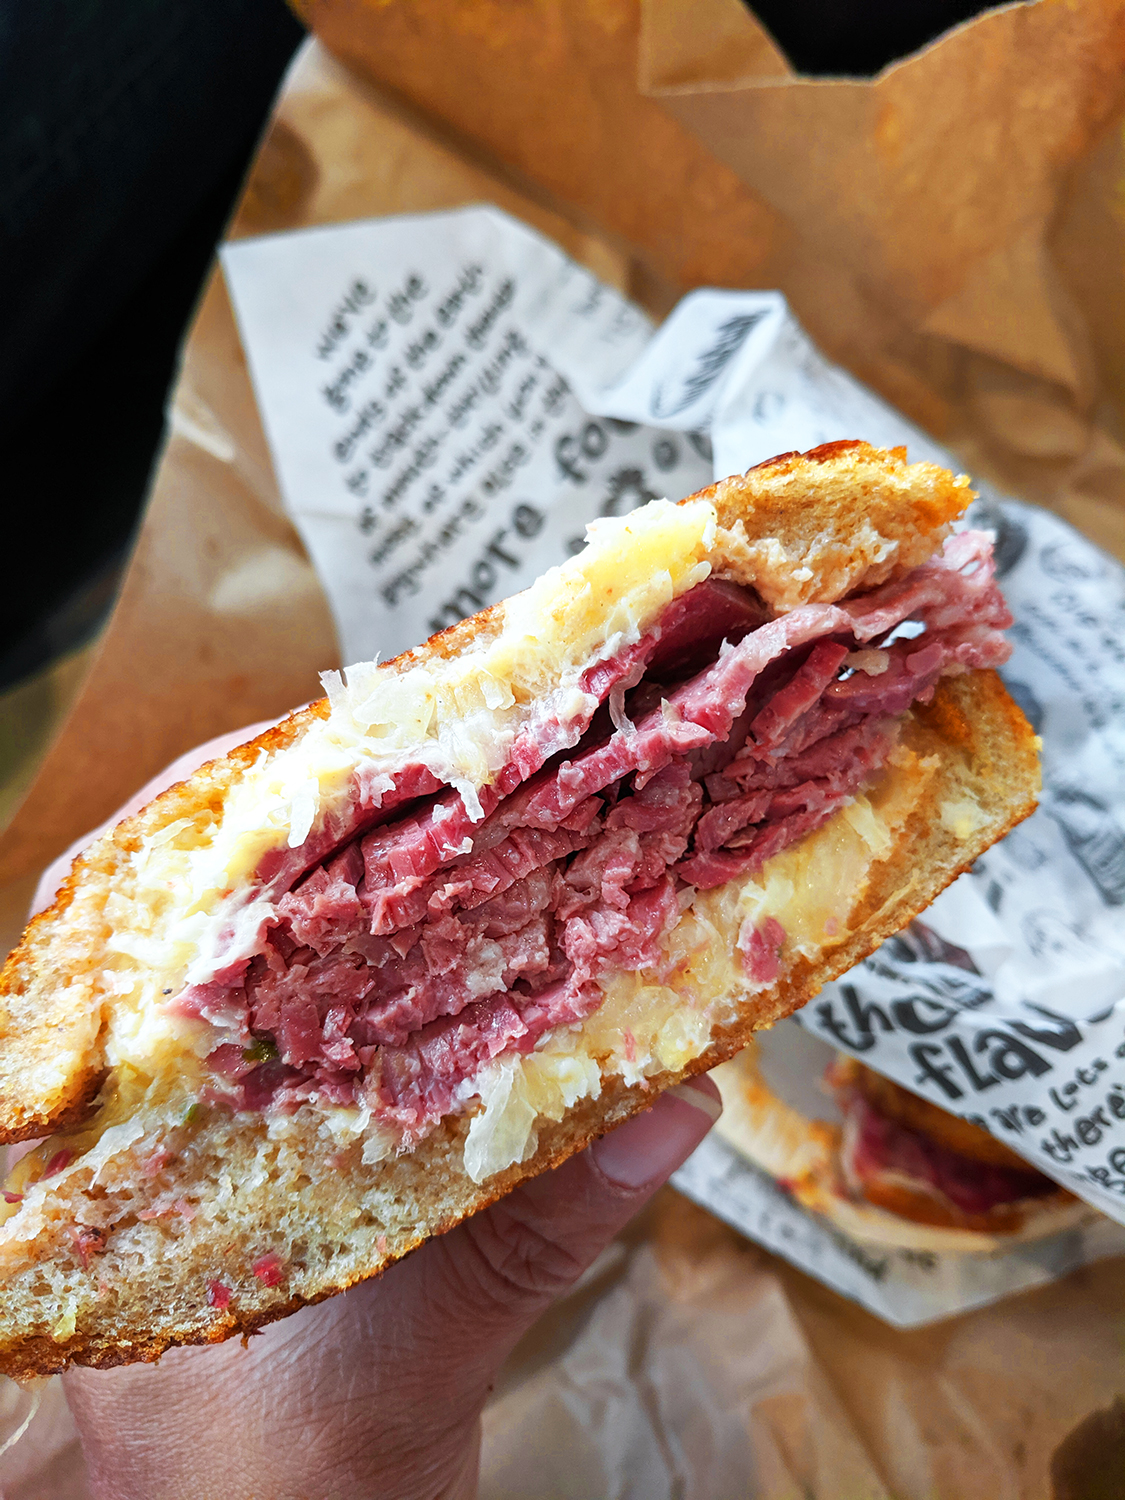 16michigan-annarbor-zingermans-deli-pastrami-sandwich-food-travel